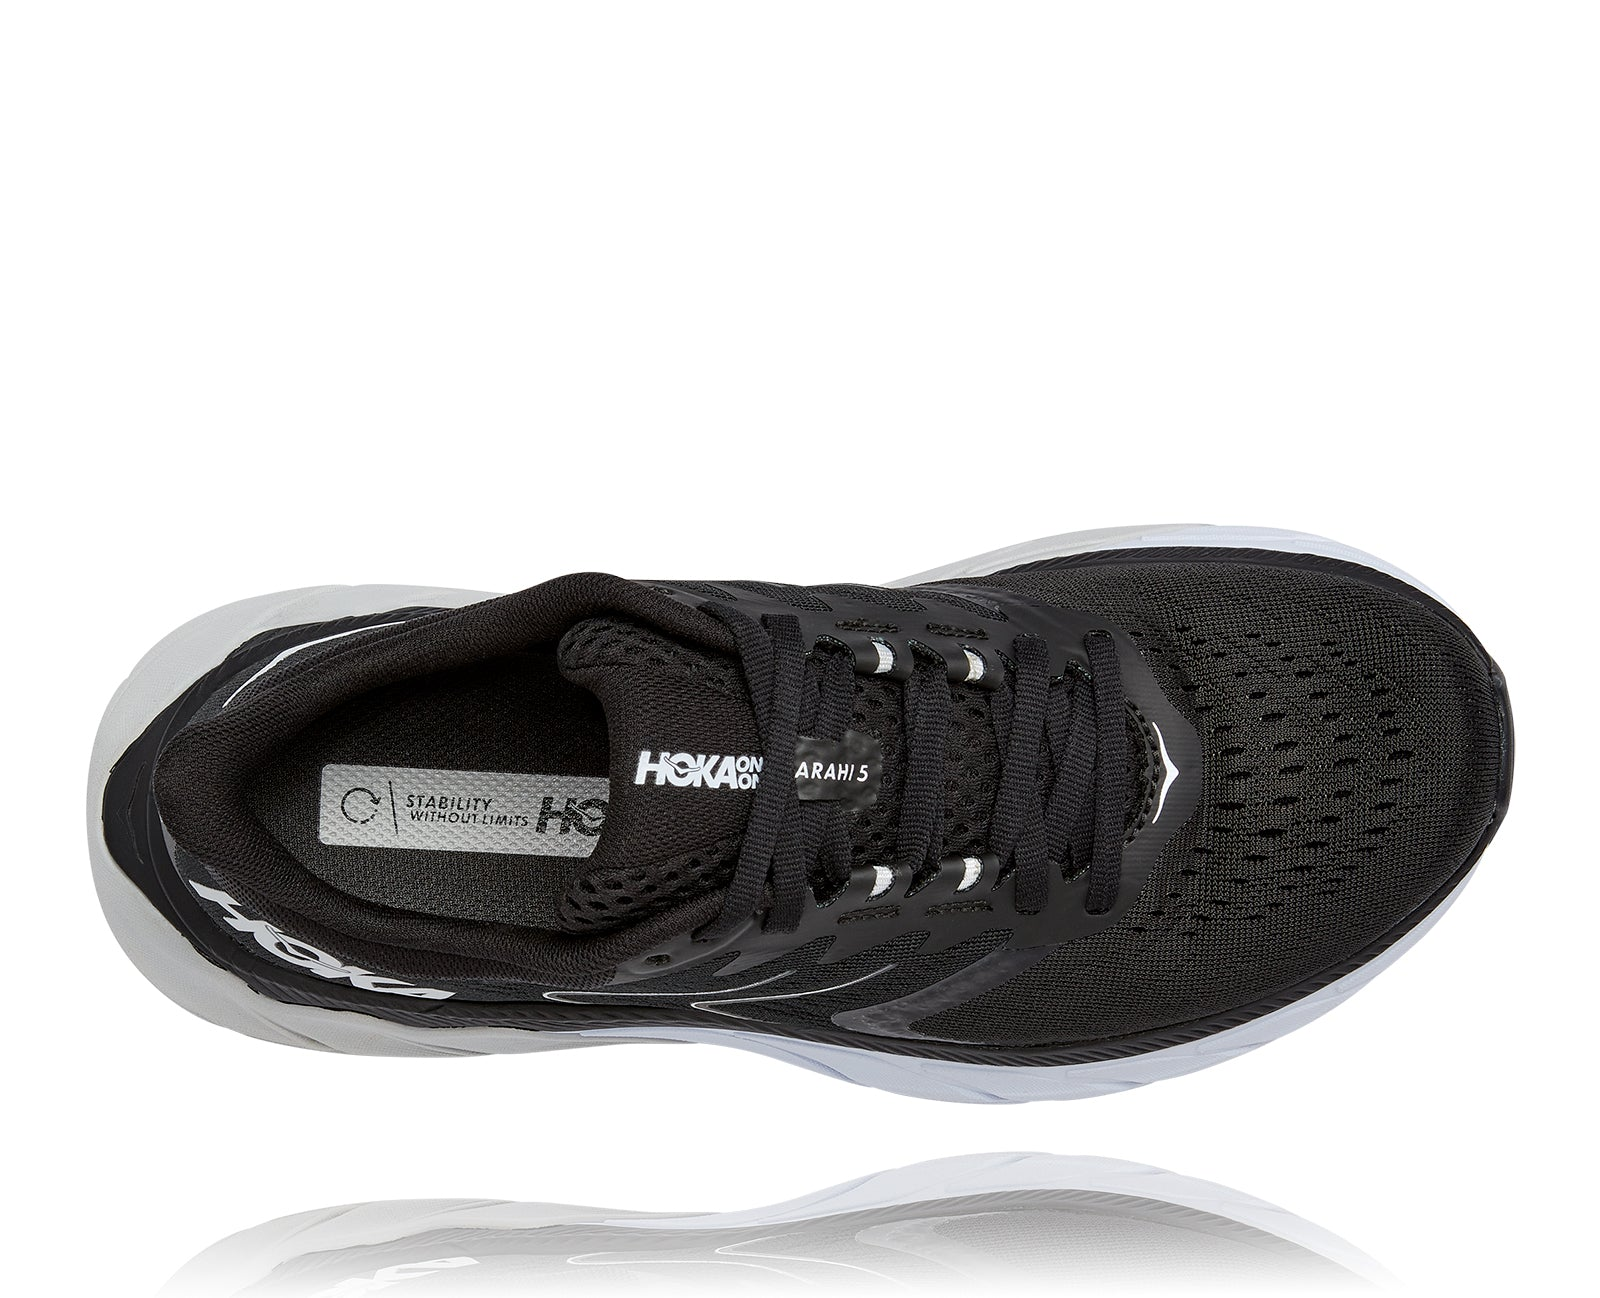 Women's Arahi 5 (BWHT - Black/White)